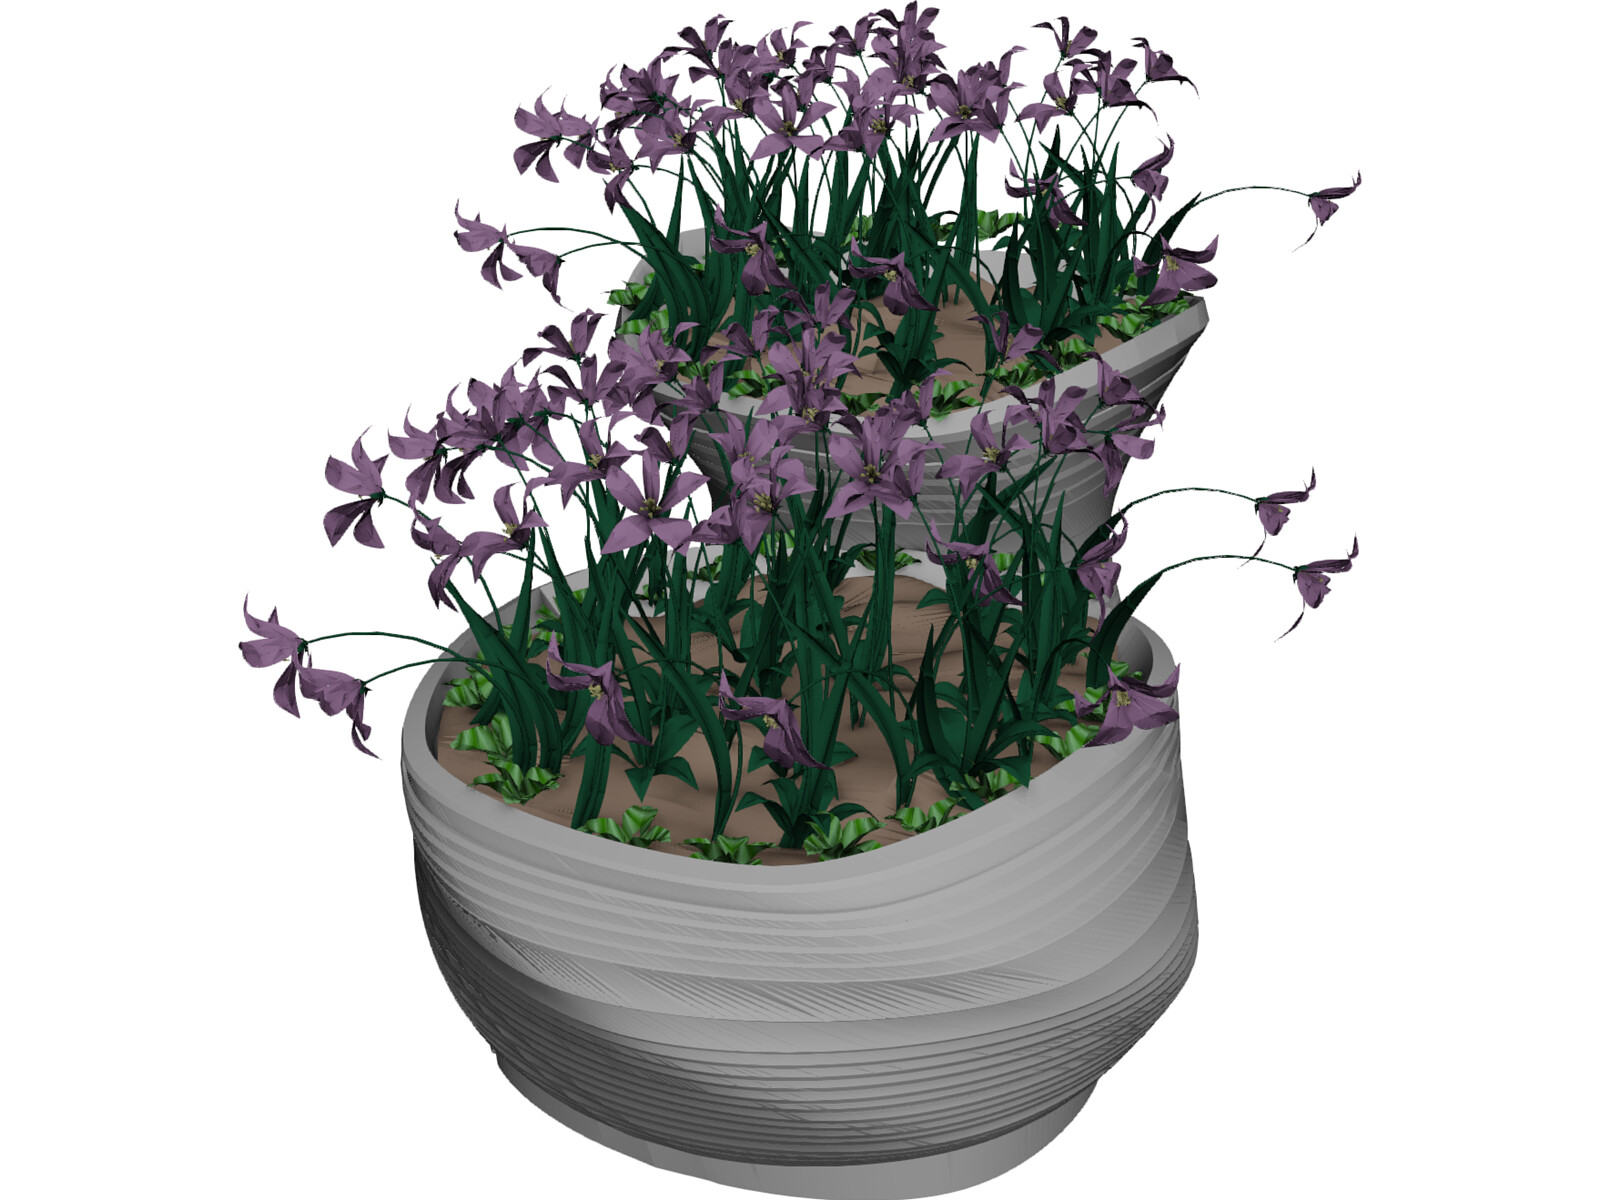 Flower Bed with Flowers 3D Model - 3D CAD Browser